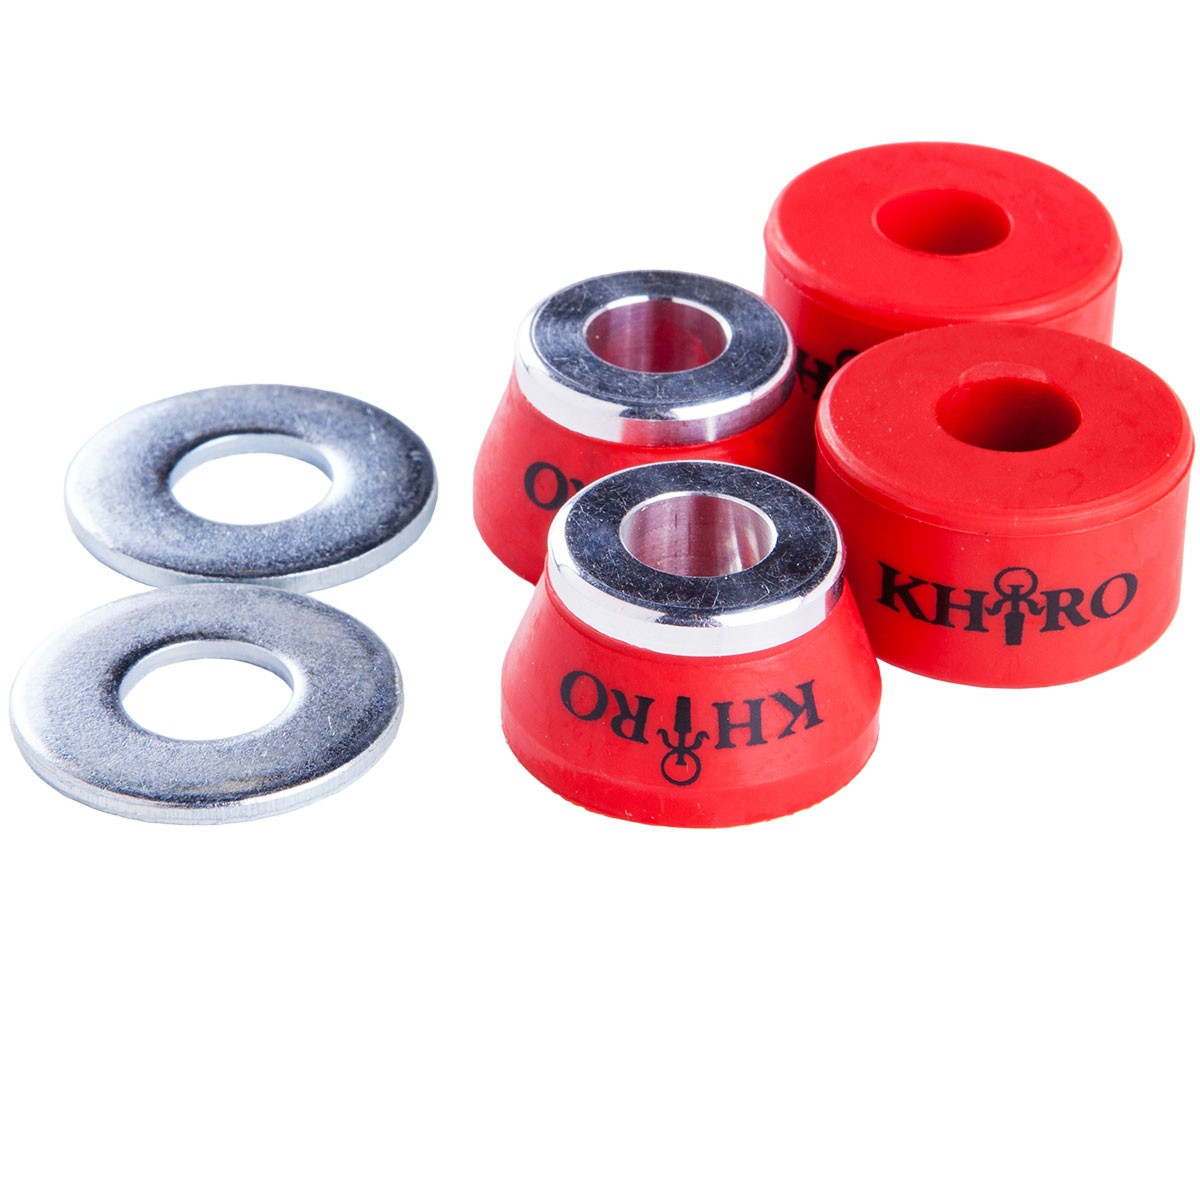 Khiro Replacement Bushing Kit